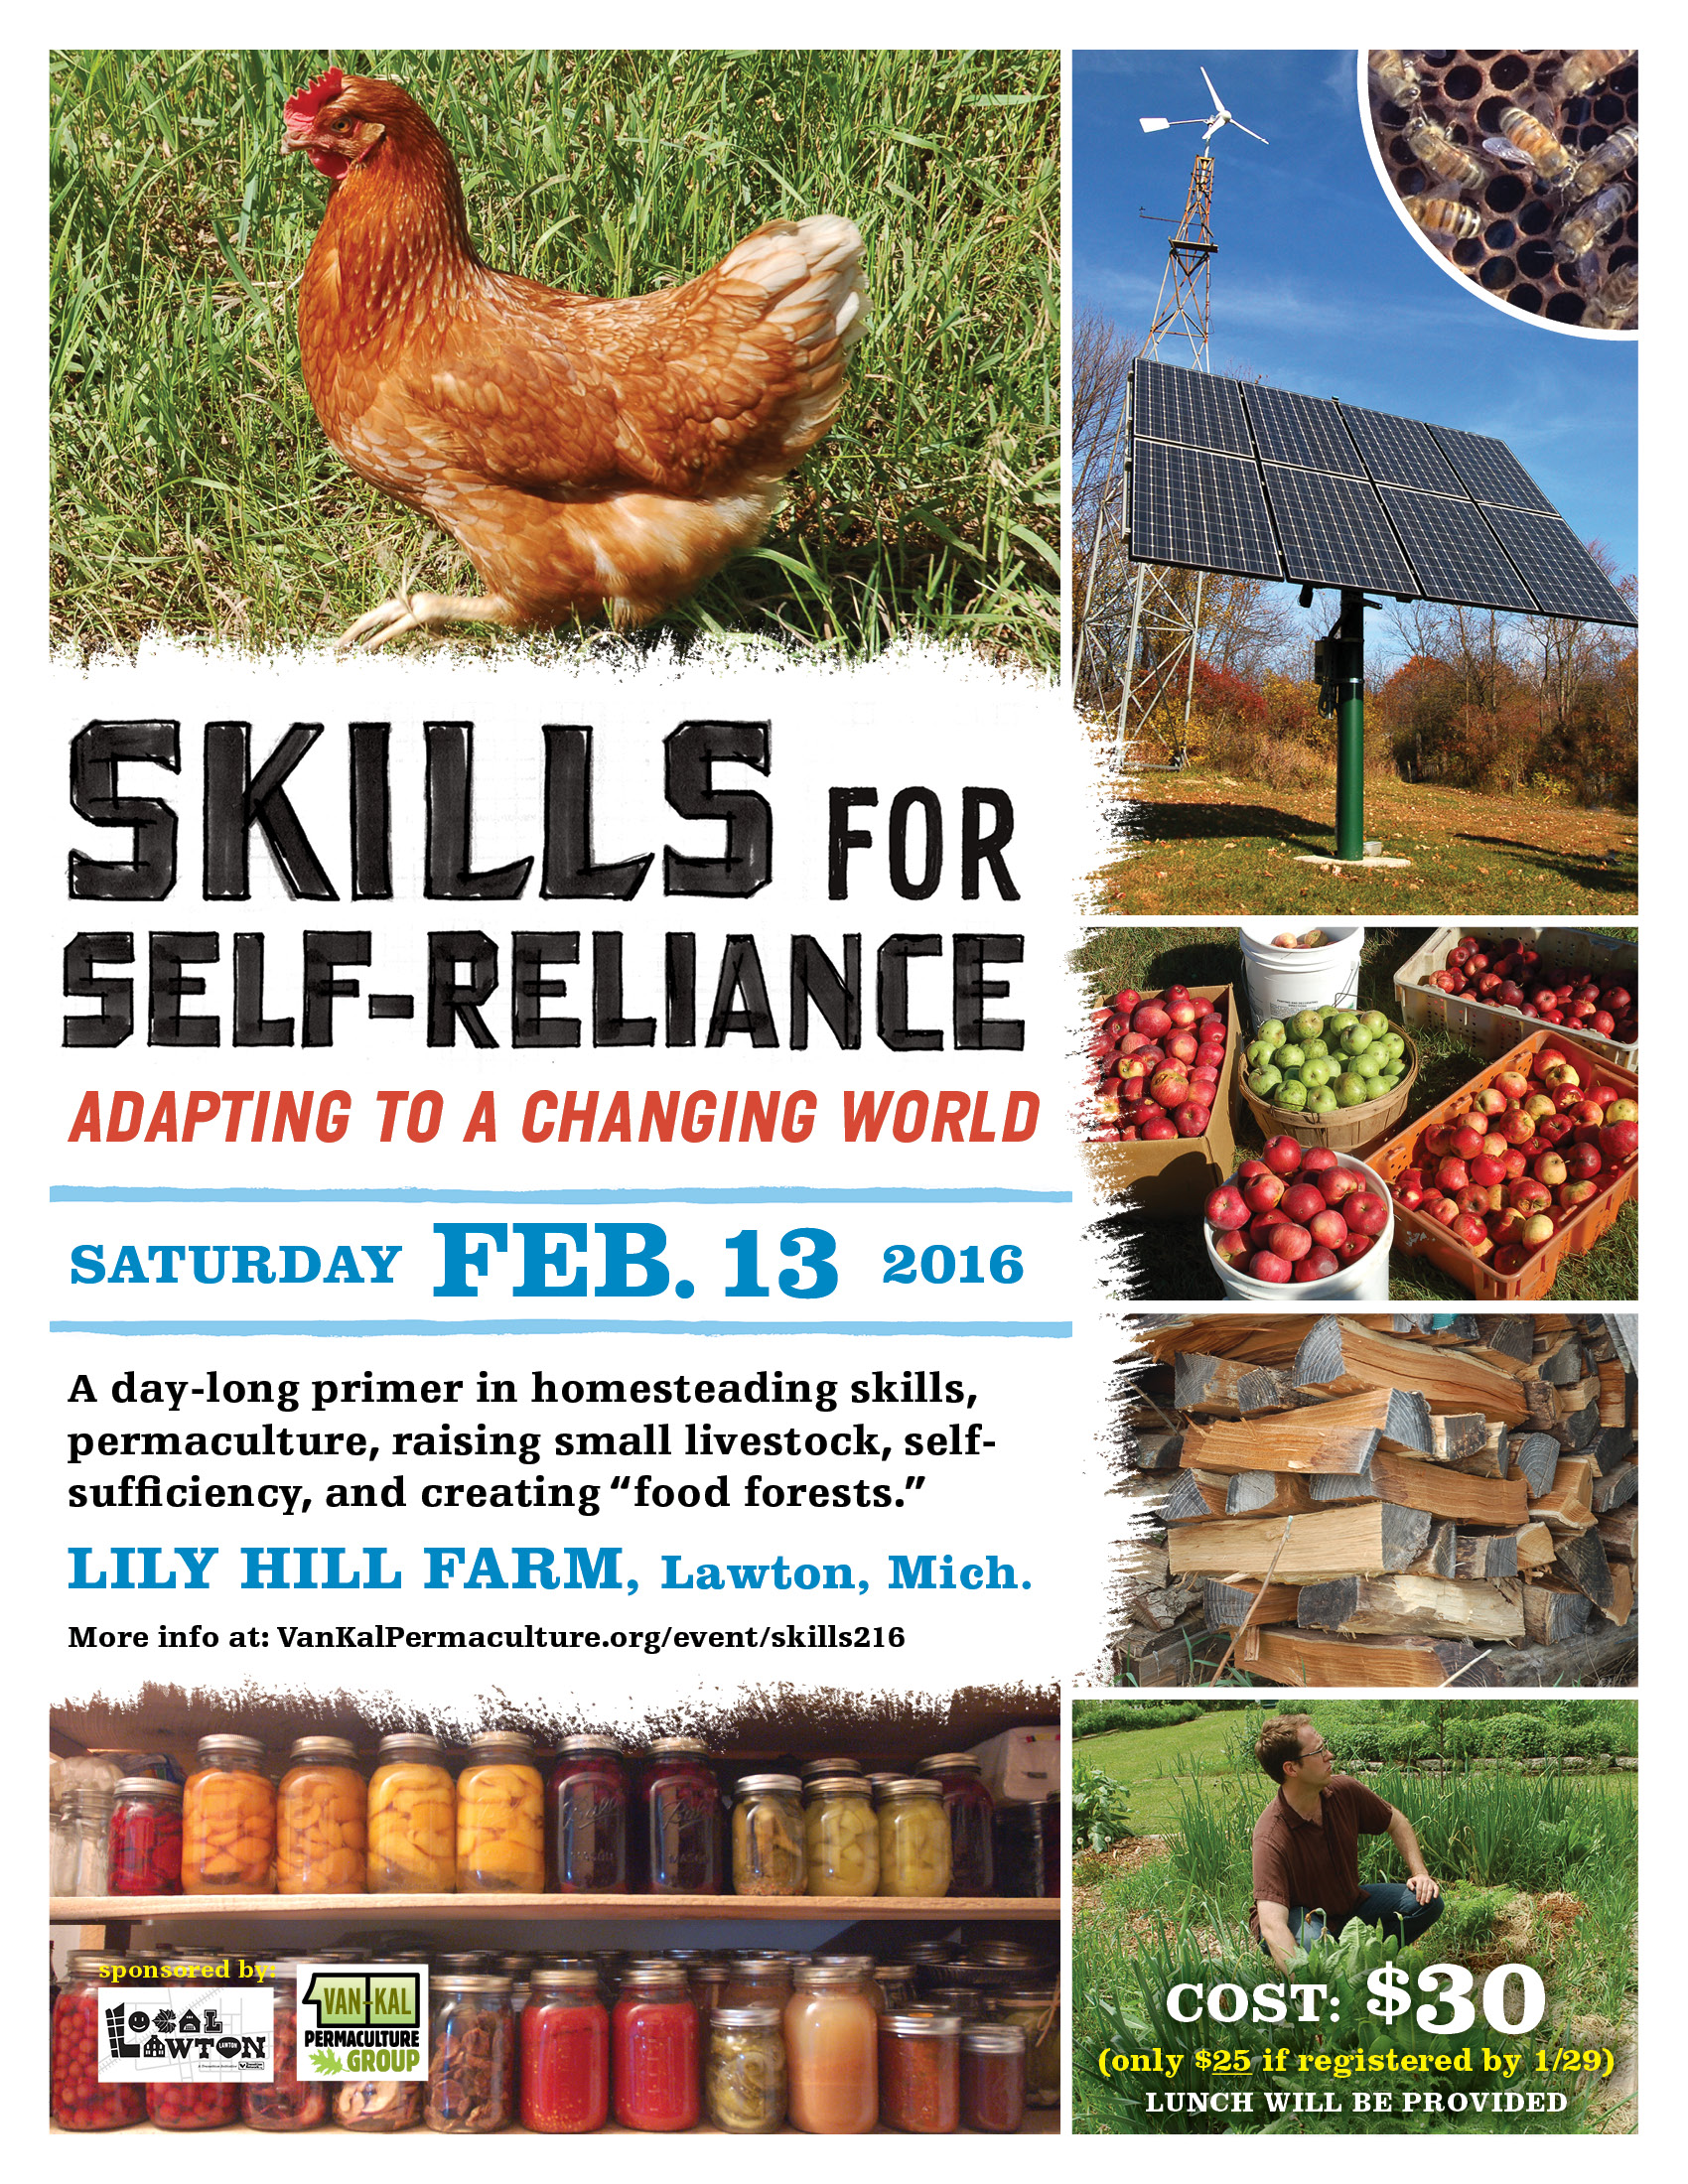 Skills for Self-Reliance